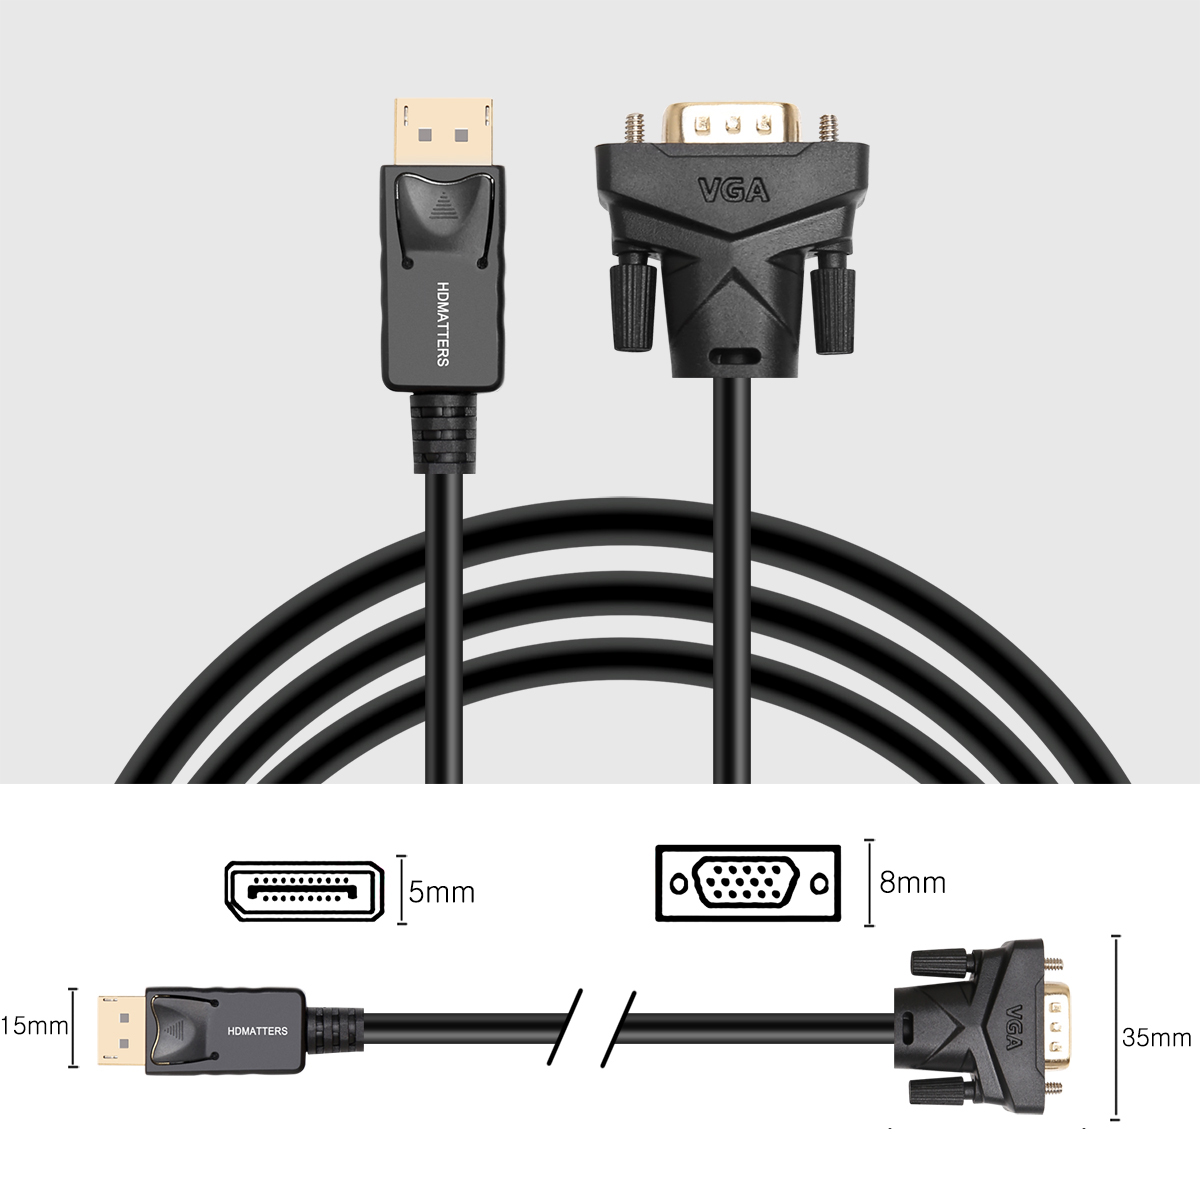 Displayport to VGA cable 1.8m DP to VGA adapter converter cable DP male to VGA male for HP Dell Asus lenovo PC laptop(China)